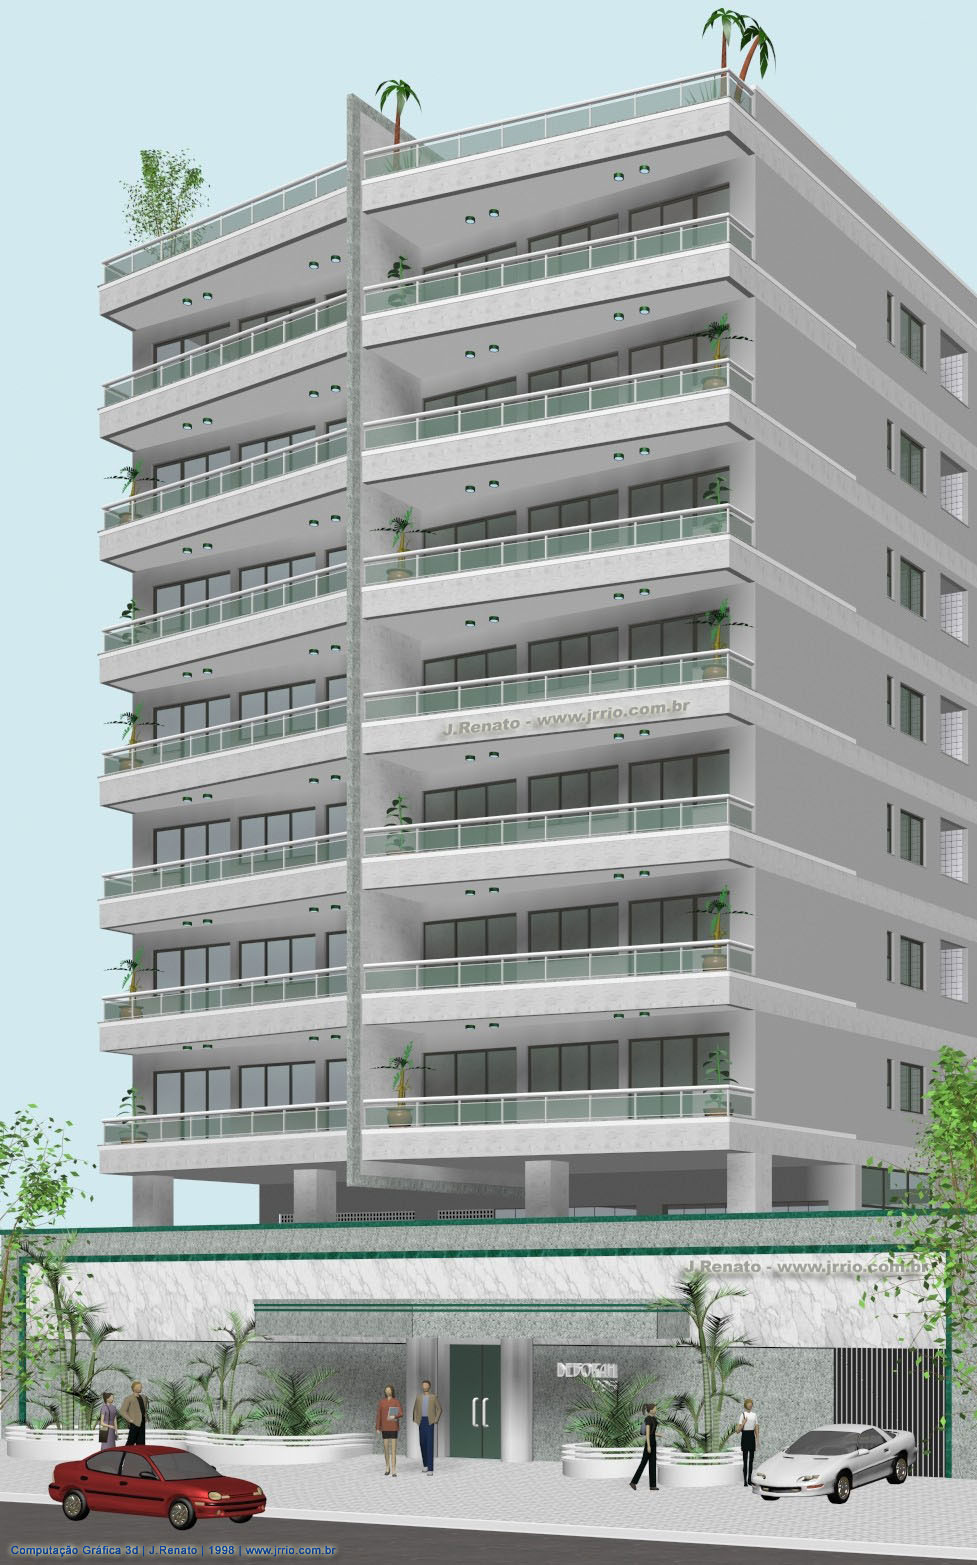 Apartment Building - 3D Architectural Model and Rendering